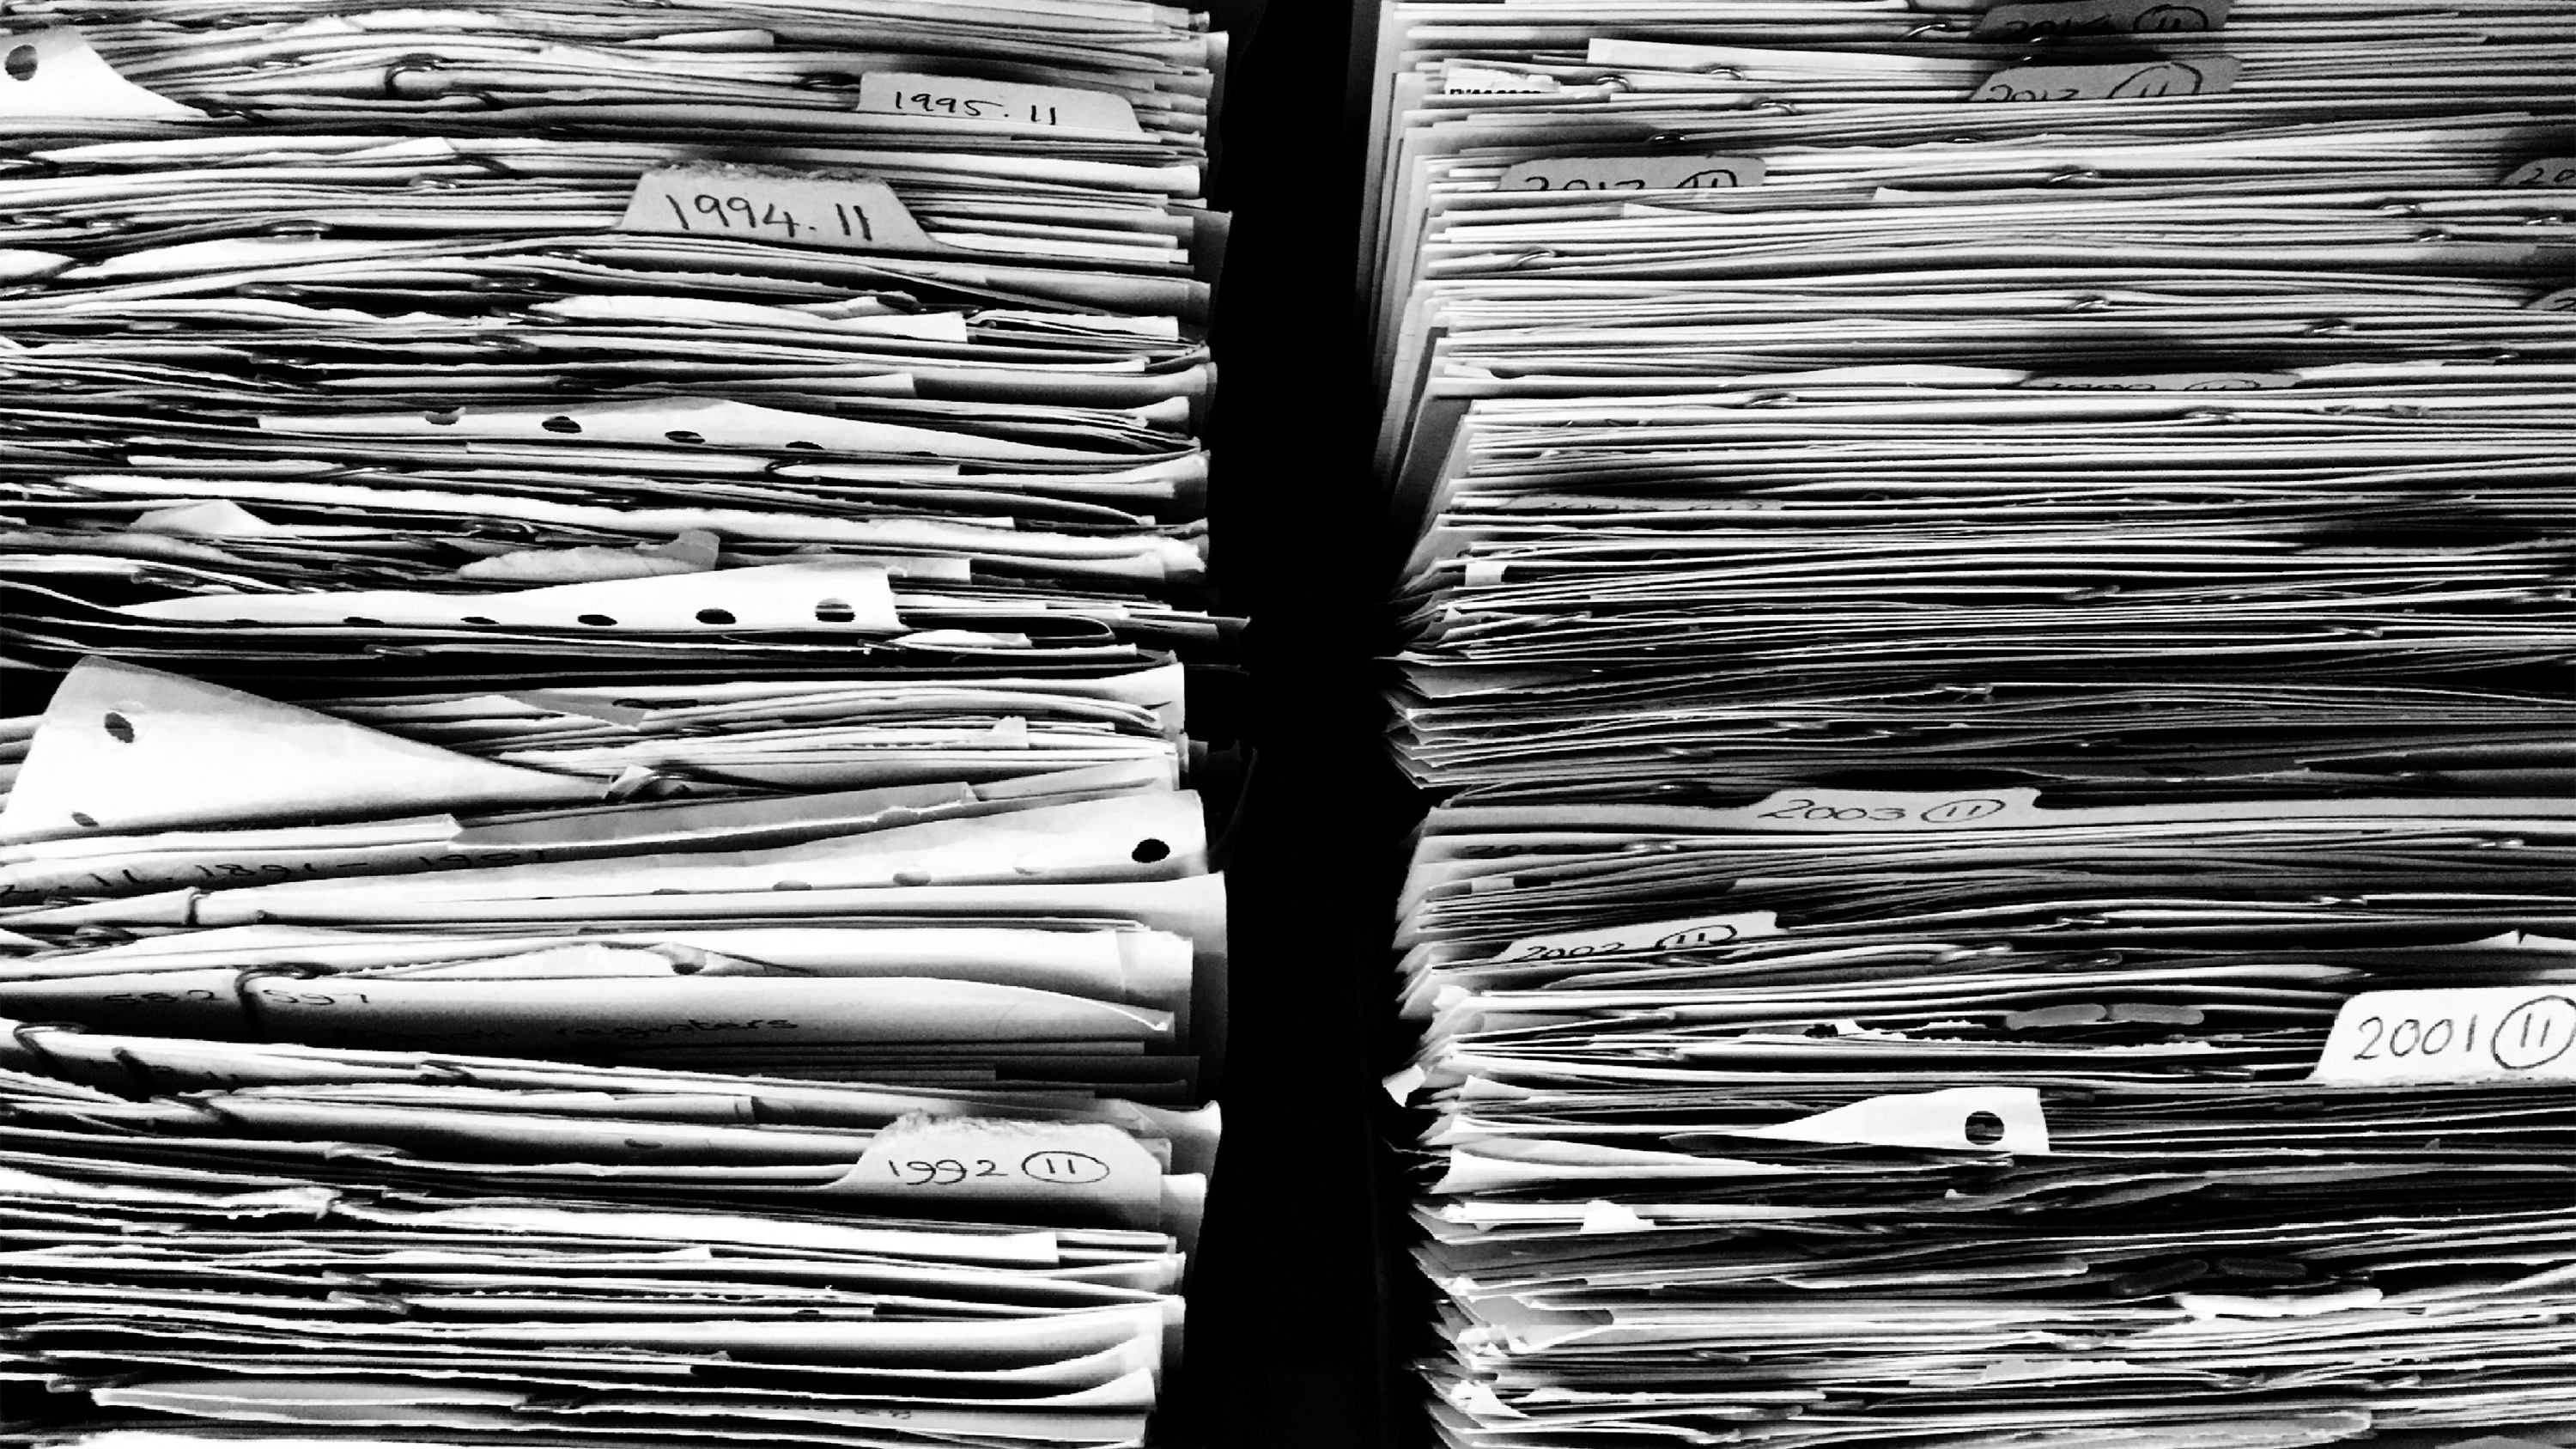 stacks of paper records